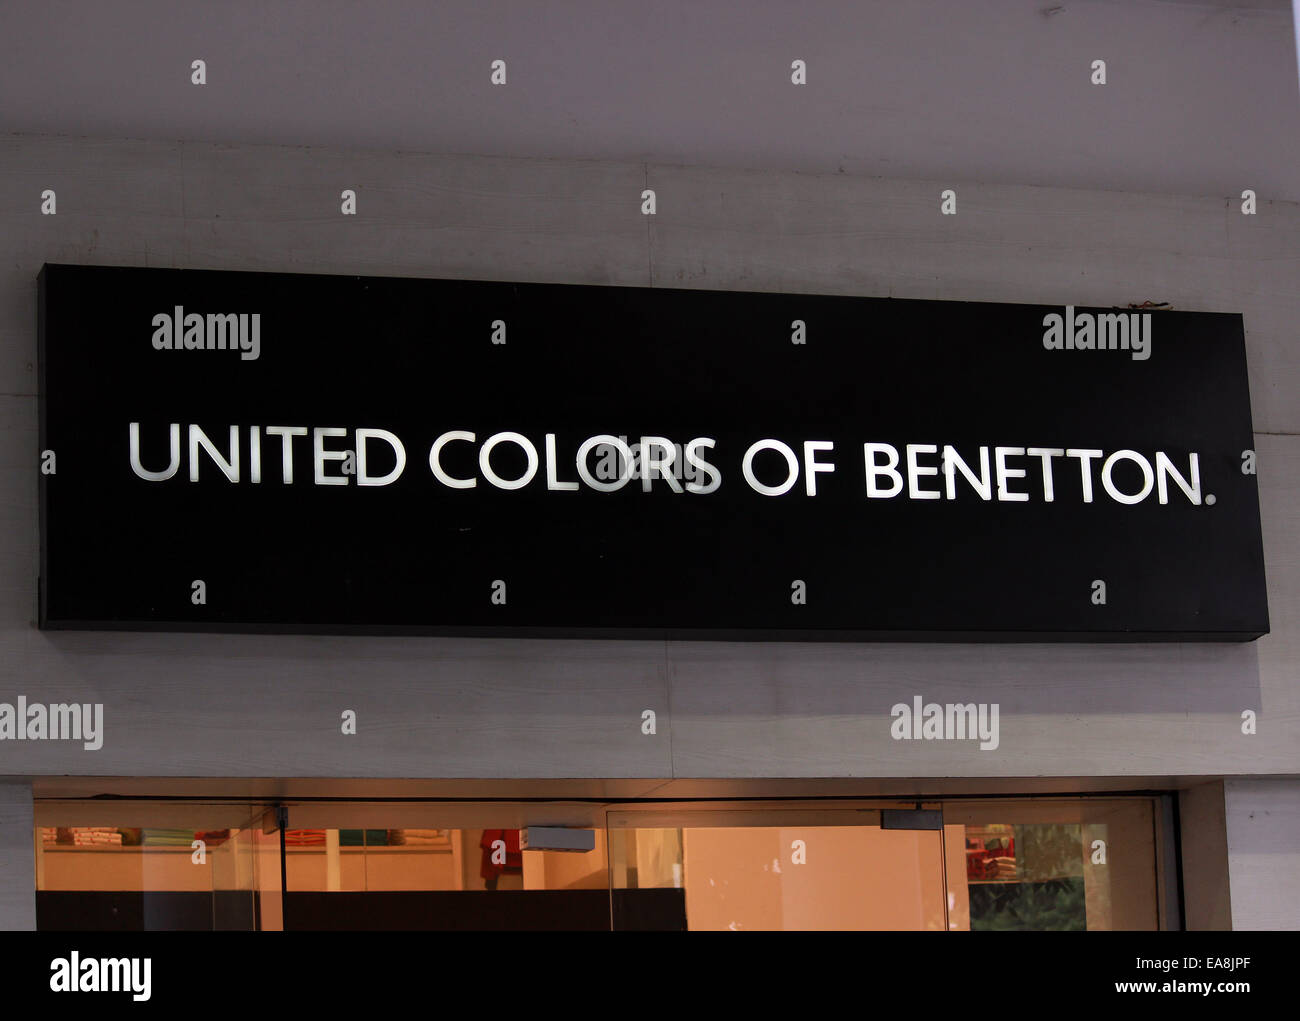 clothes, company, logo, United colors of benetton, international brand,Connaught place, New Delhi, India. - Stock Image